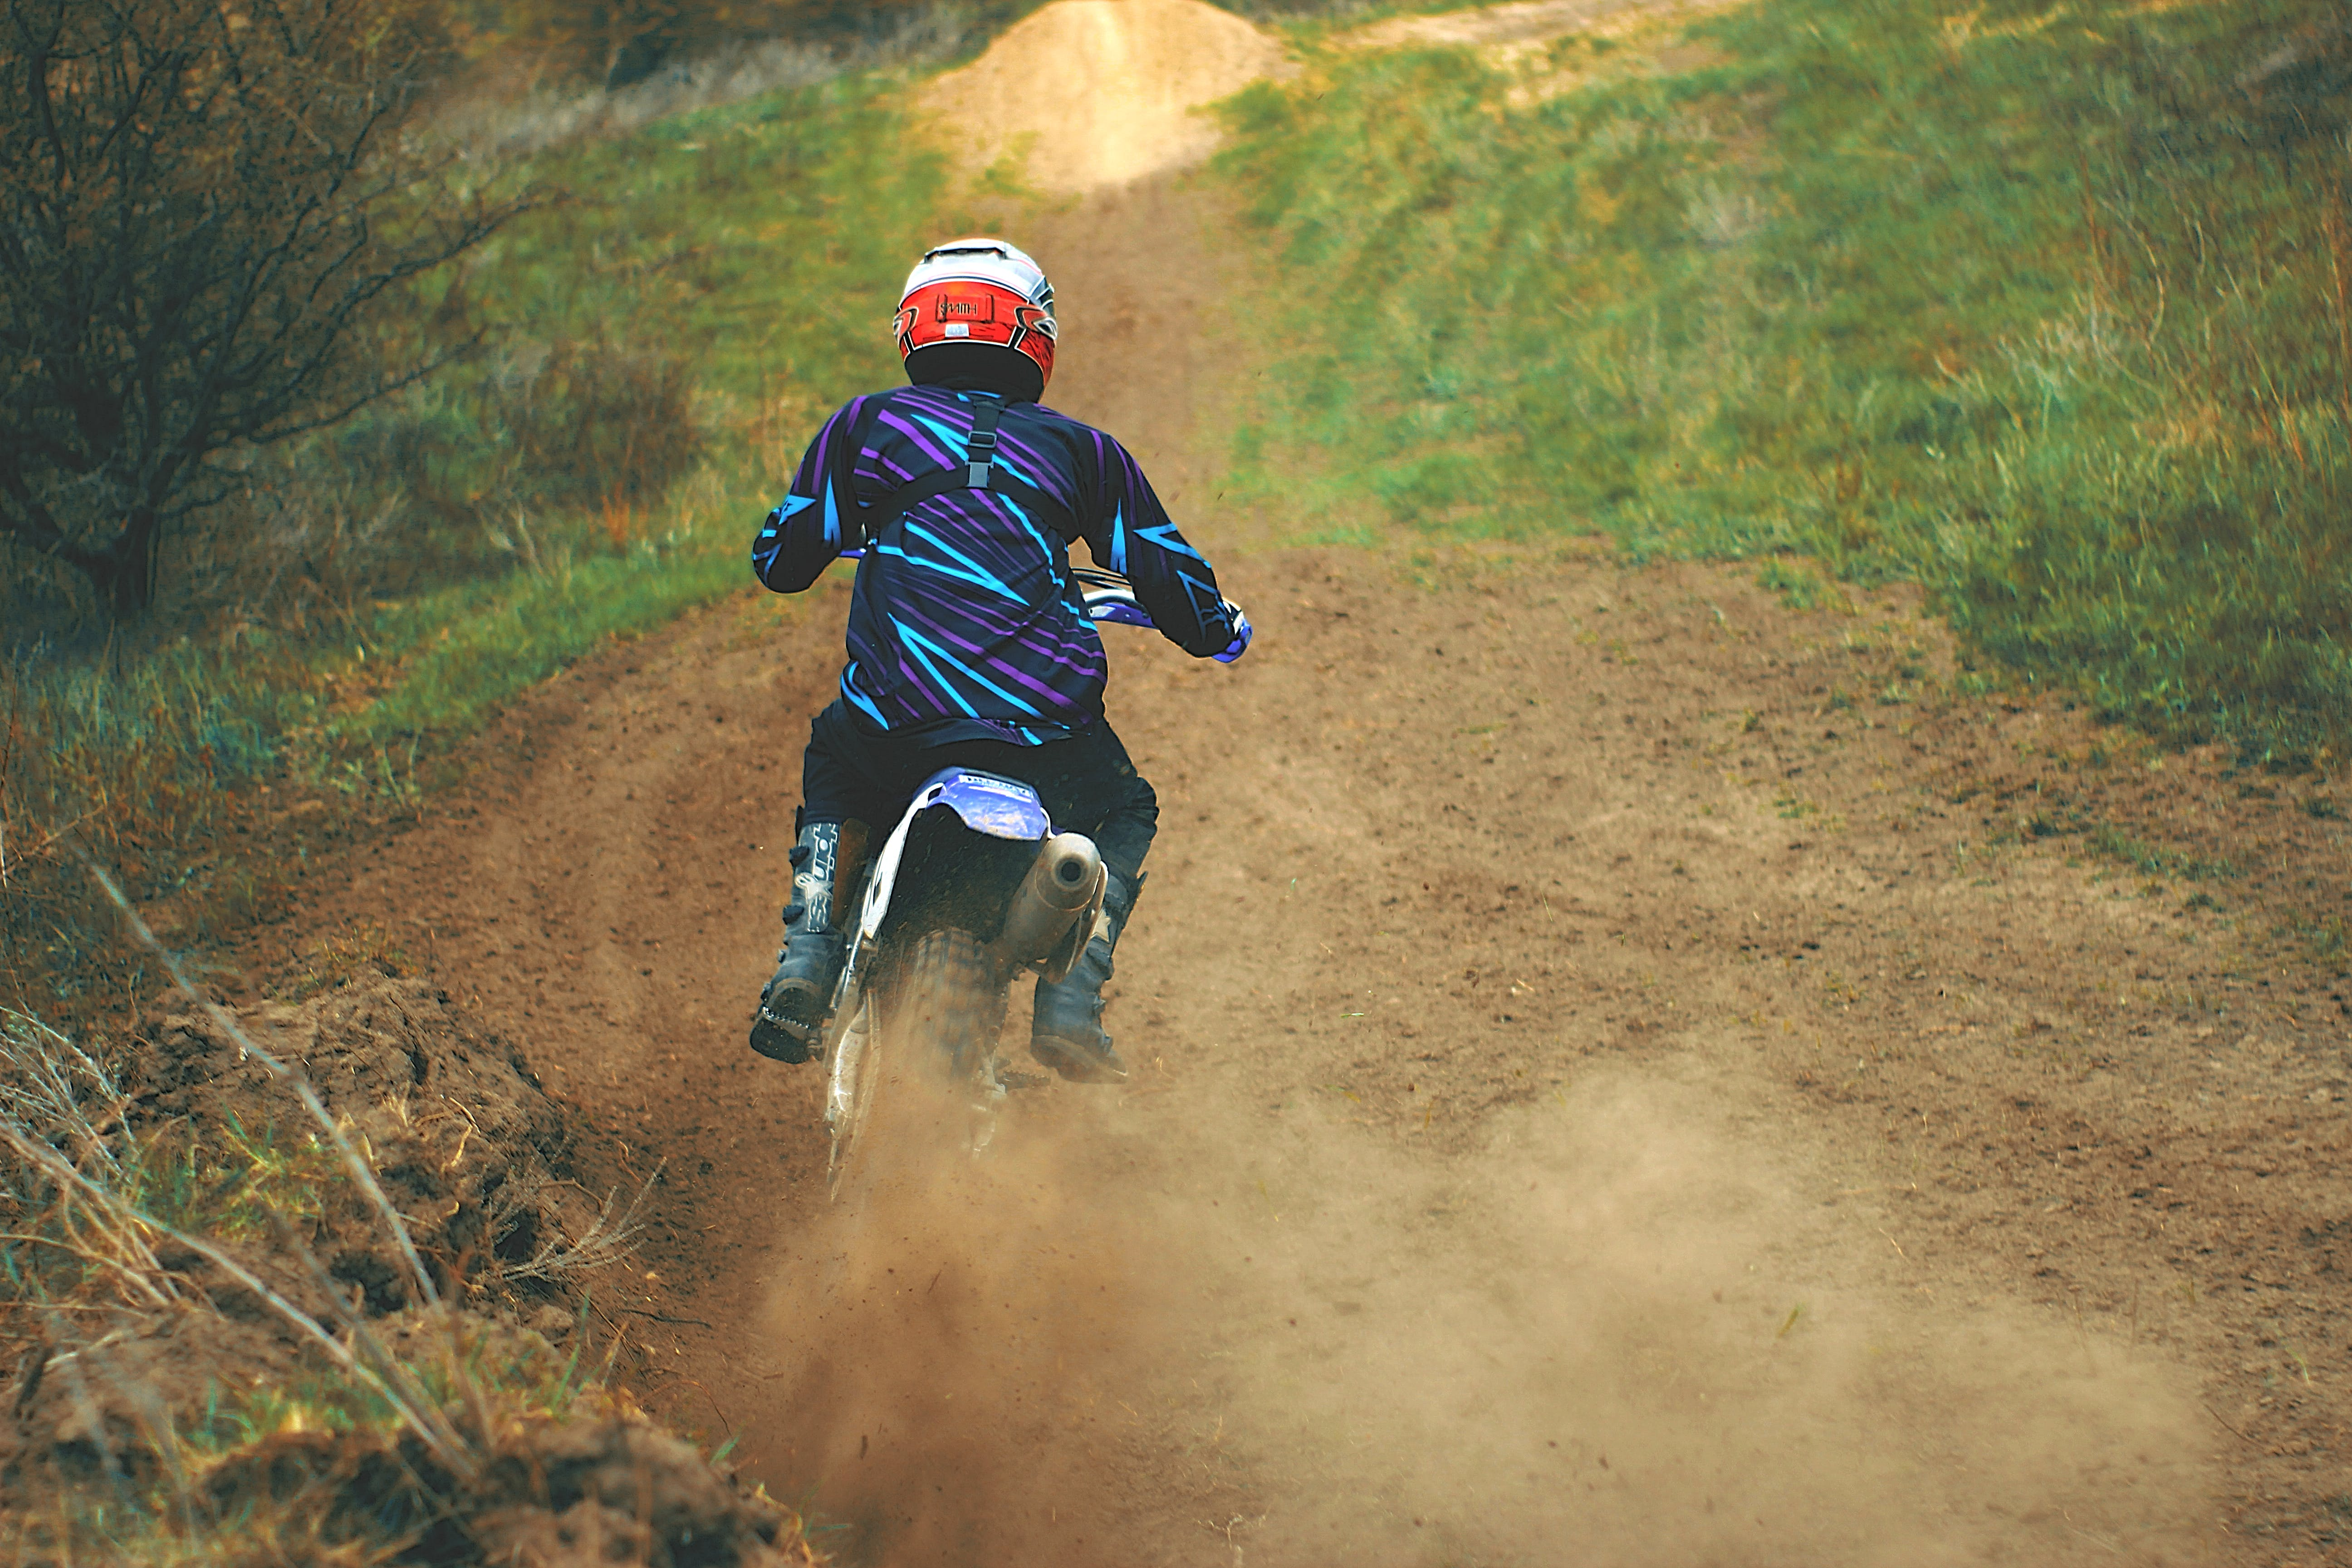 Man Riding Motocross Dirt Bike on Dirt Road